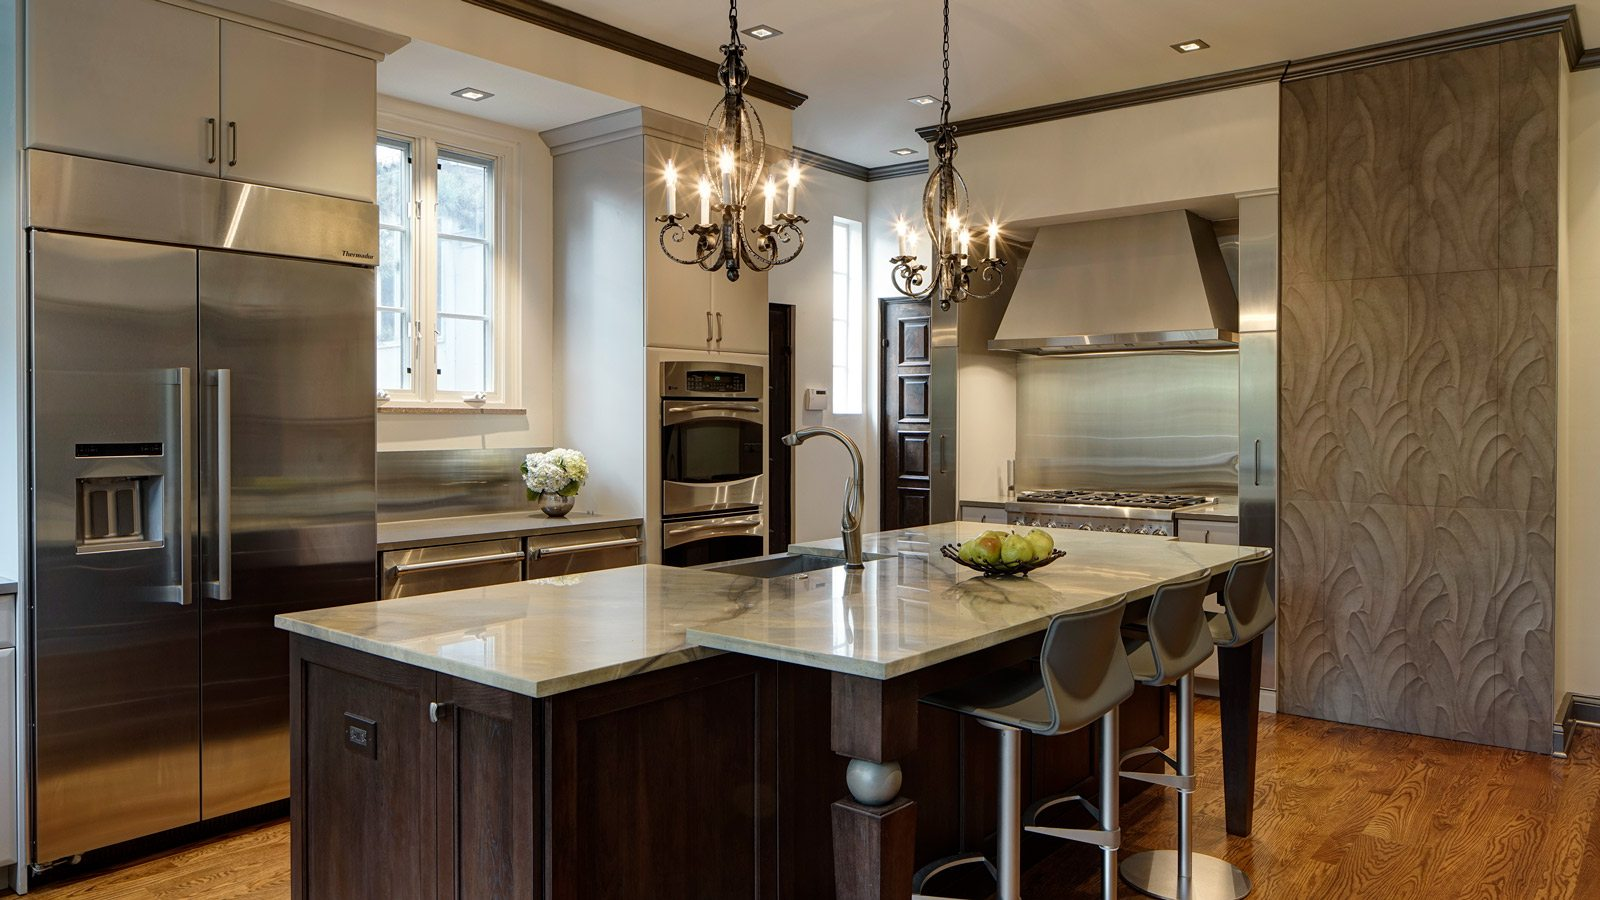 1600-x-900-Intriguing-Soft-Contemporary-Glen-Ellyn-Kitchen-Design